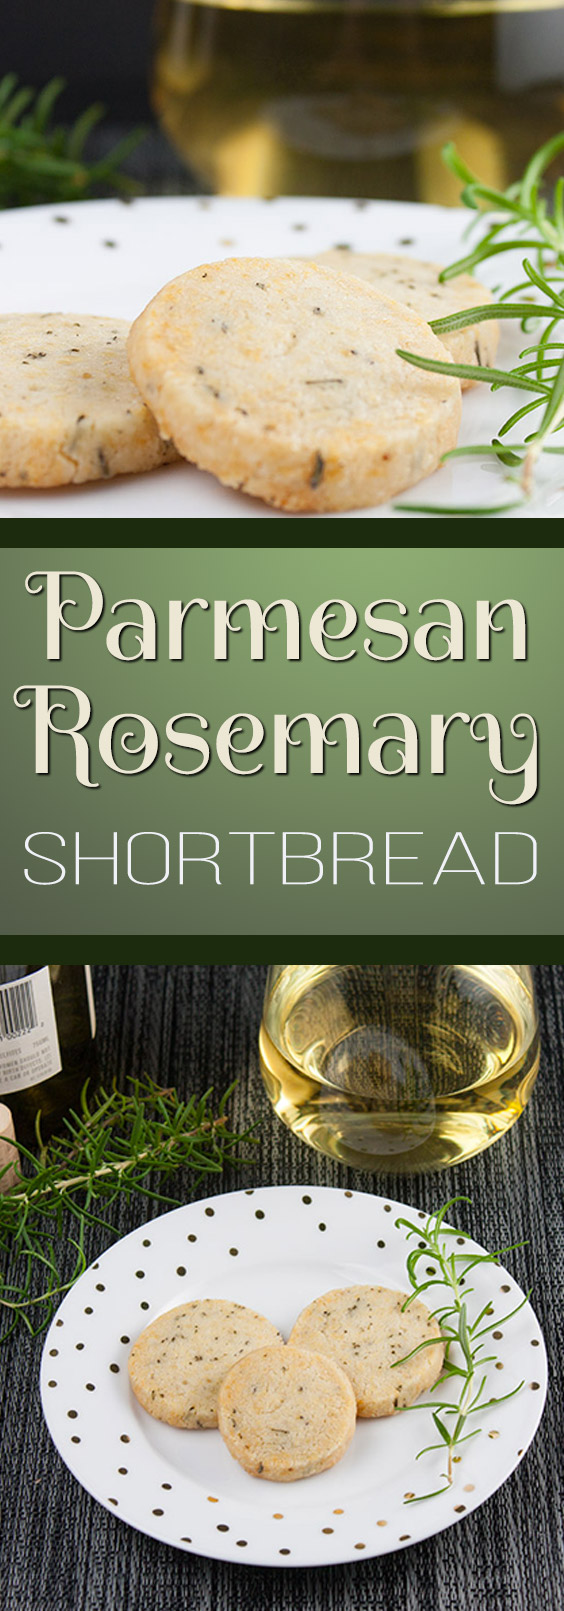 Savory Parmesan Rosemary Shortbread - Fresh rosemary, parmesan cheese and loads of fresh cracked black pepper make this the perfect cocktail appetizer or just a snack. HIGHLY ADDICTIVE!